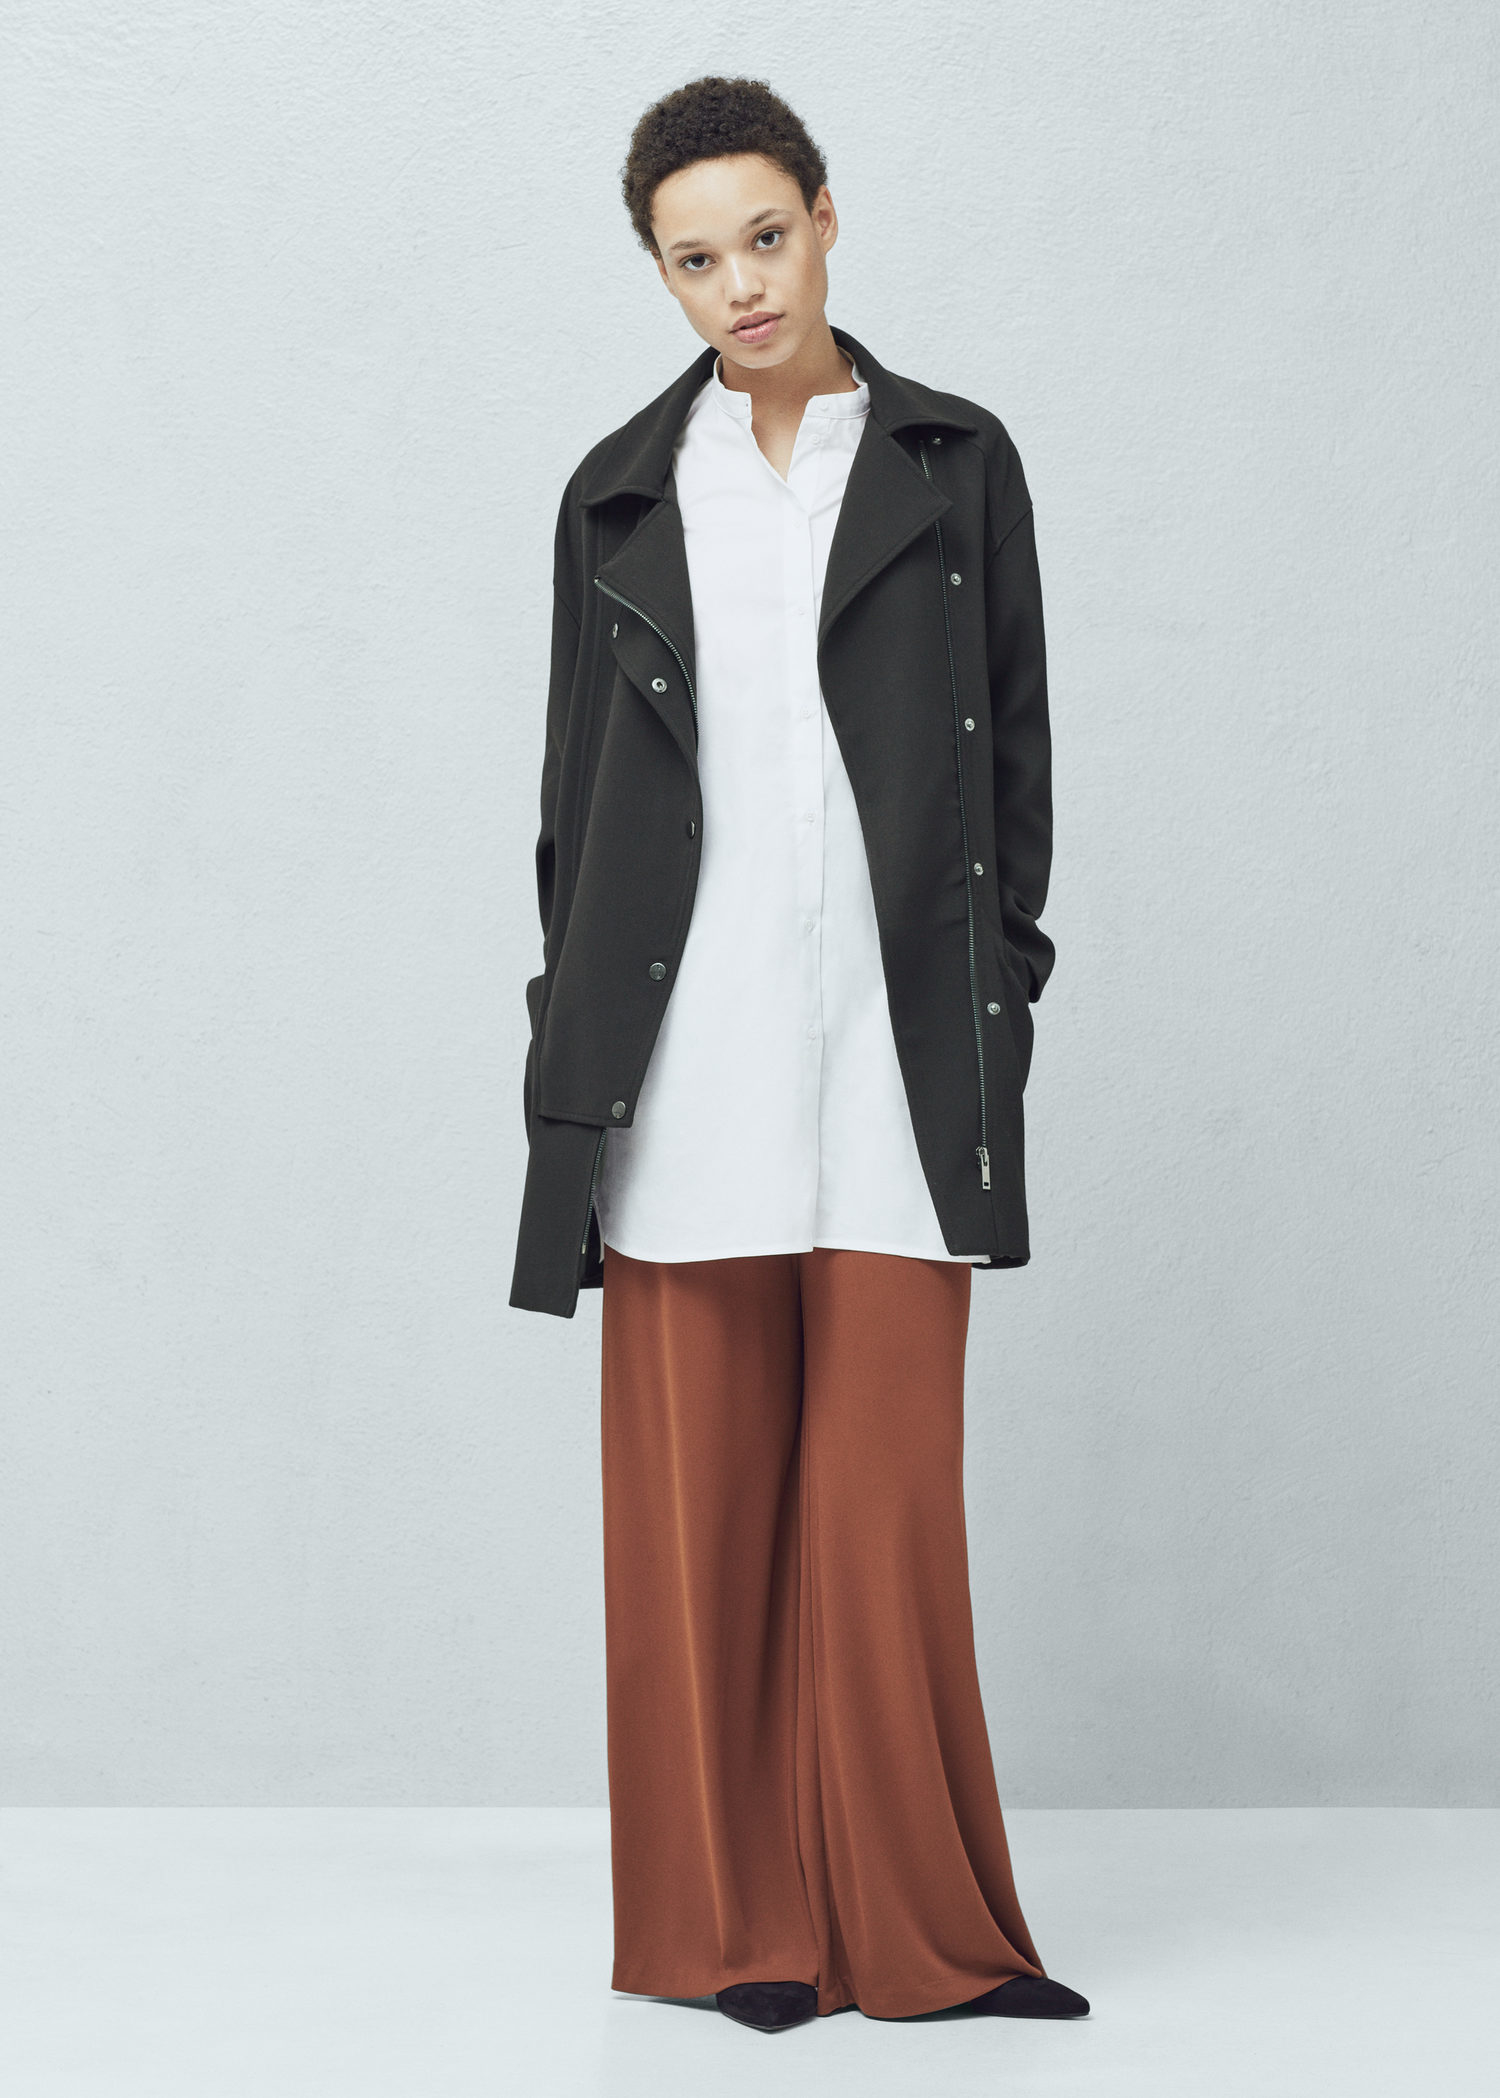 Women's Mango Coats Young, modern and stylish is the ethos behind MANGO'S urban aesthetic and vision. Armed with a design team that understands the metropolitan women MANGO delivers high quality products that feature innovation and originality.